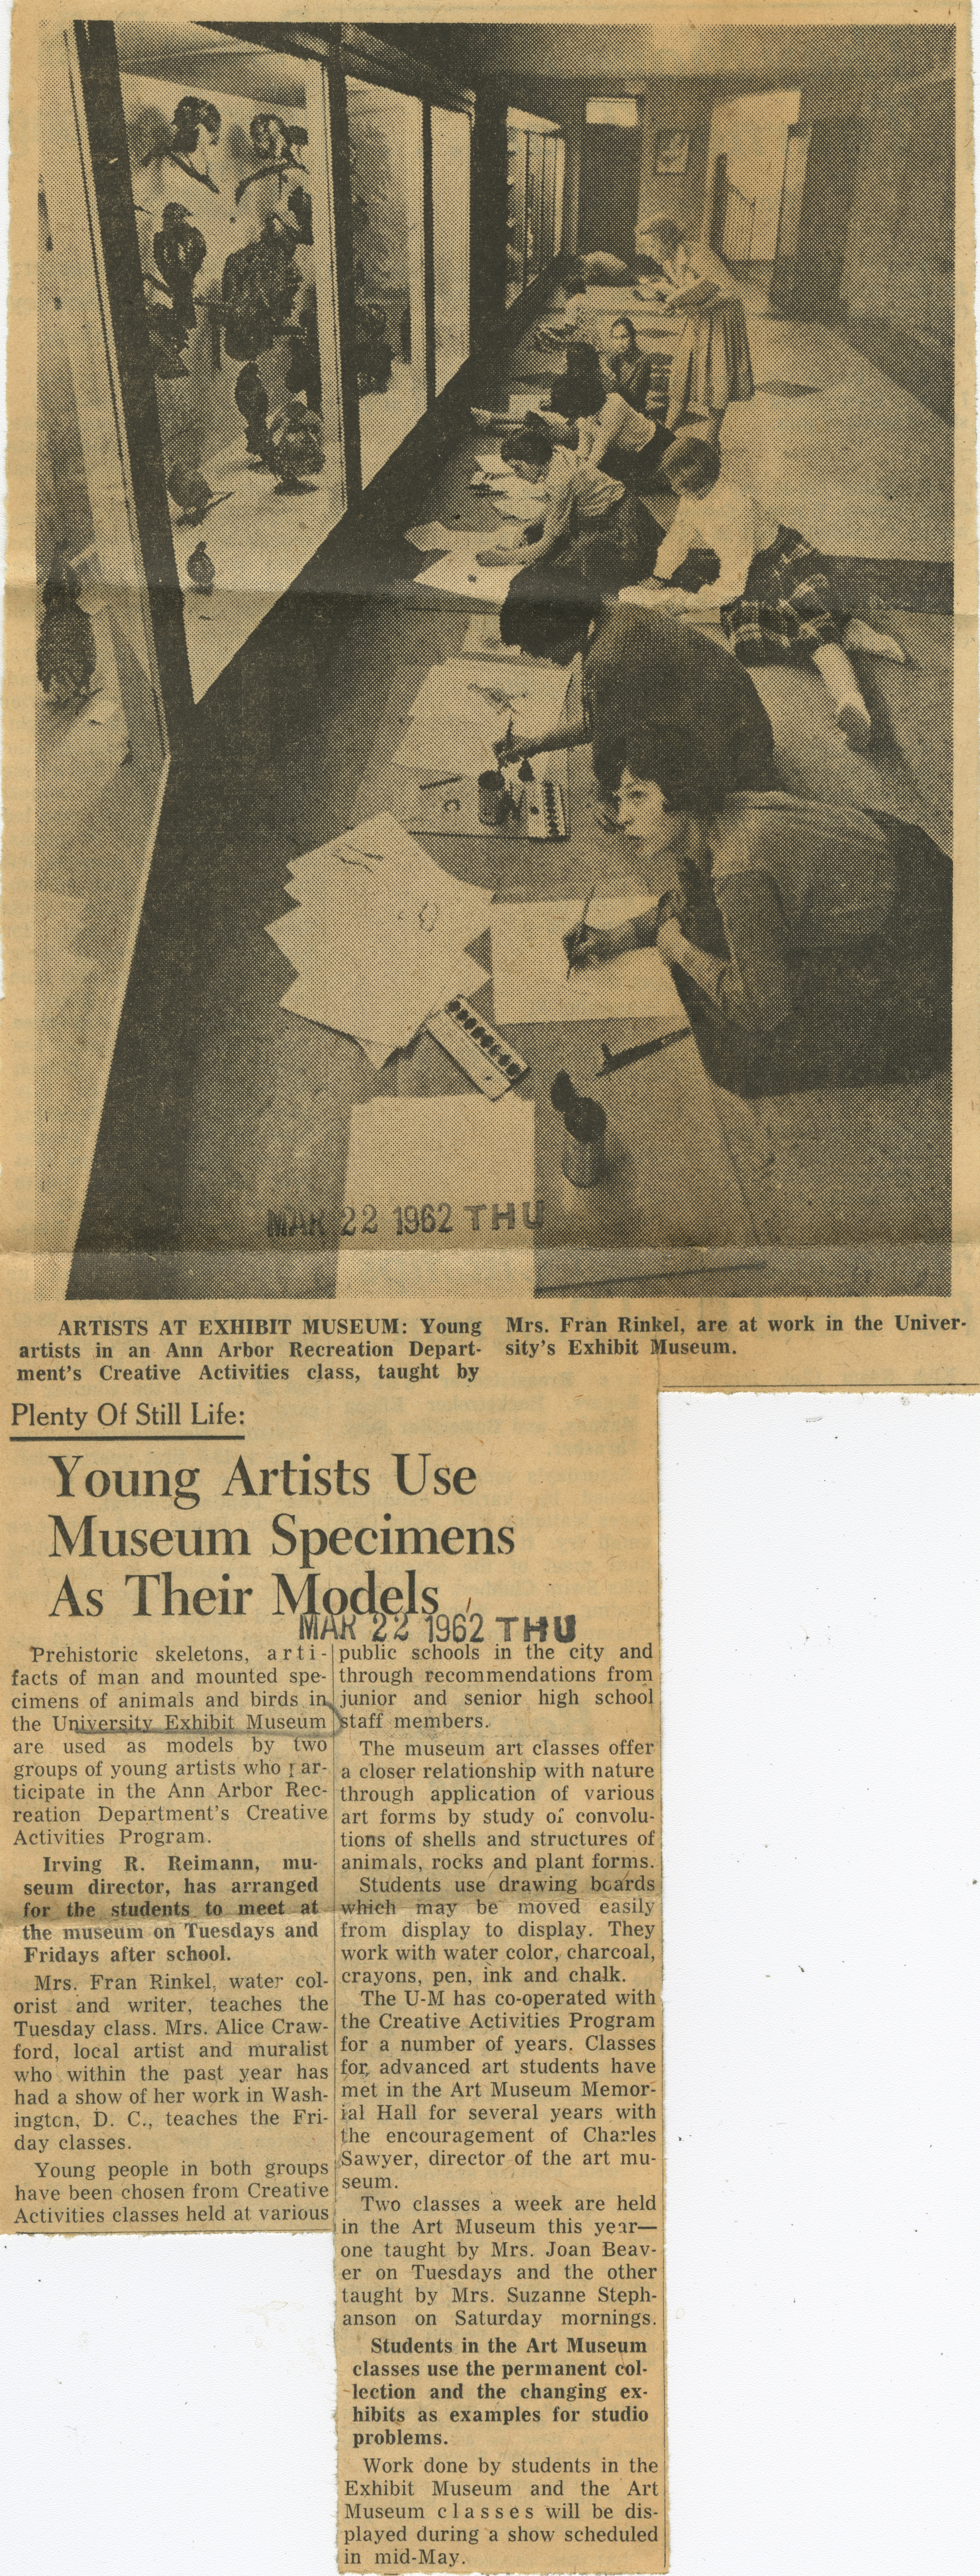 Young Artists Use Museum Specimens As Their Models image